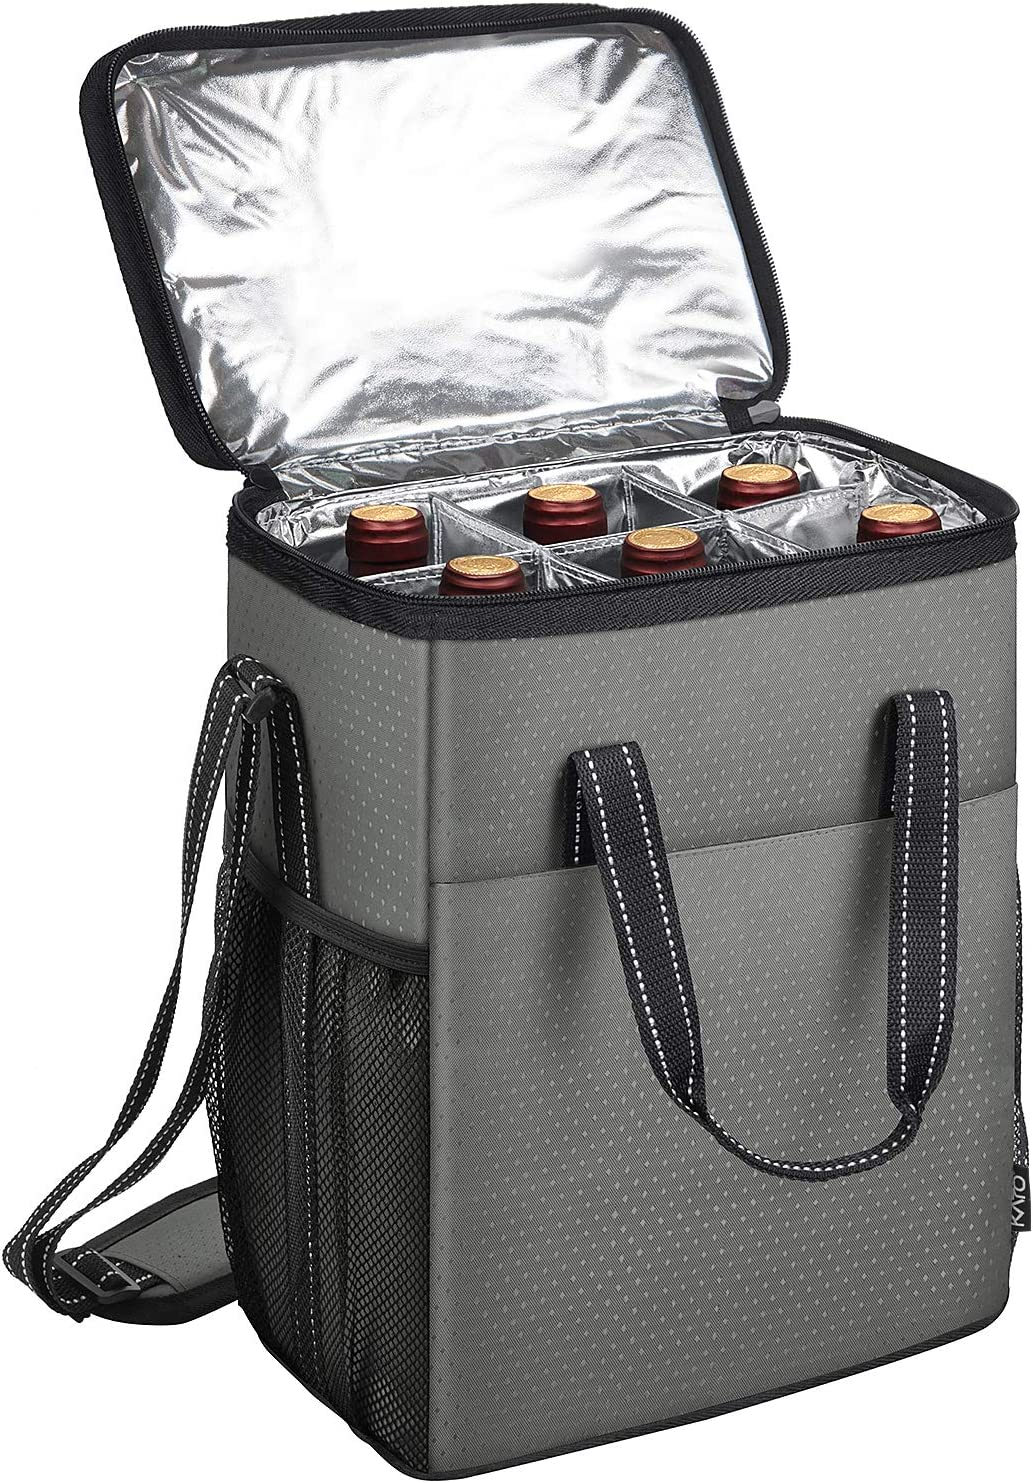 6 Bottle Wine Carrier - Insulated & Padded Wine Carrying Cooler Tote Bag for Travel, Camping and Picnic, Ideal Wine Lover Gift, Star Dot Pattern, Grey